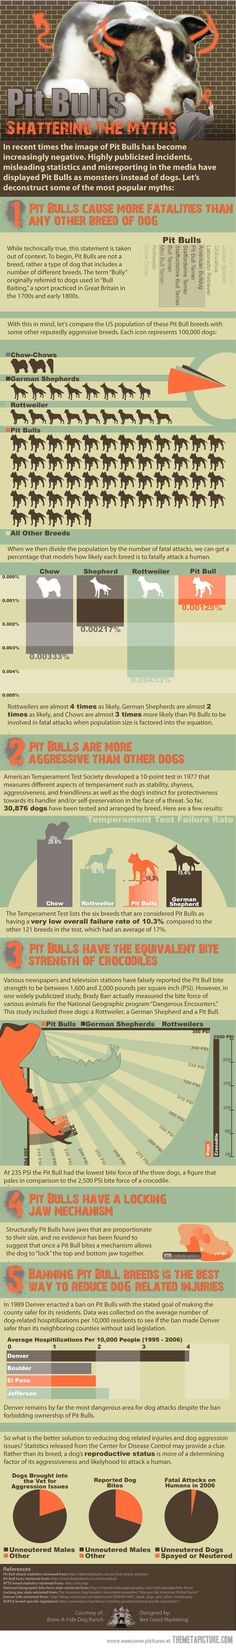 Common myths about Pit Bulls…